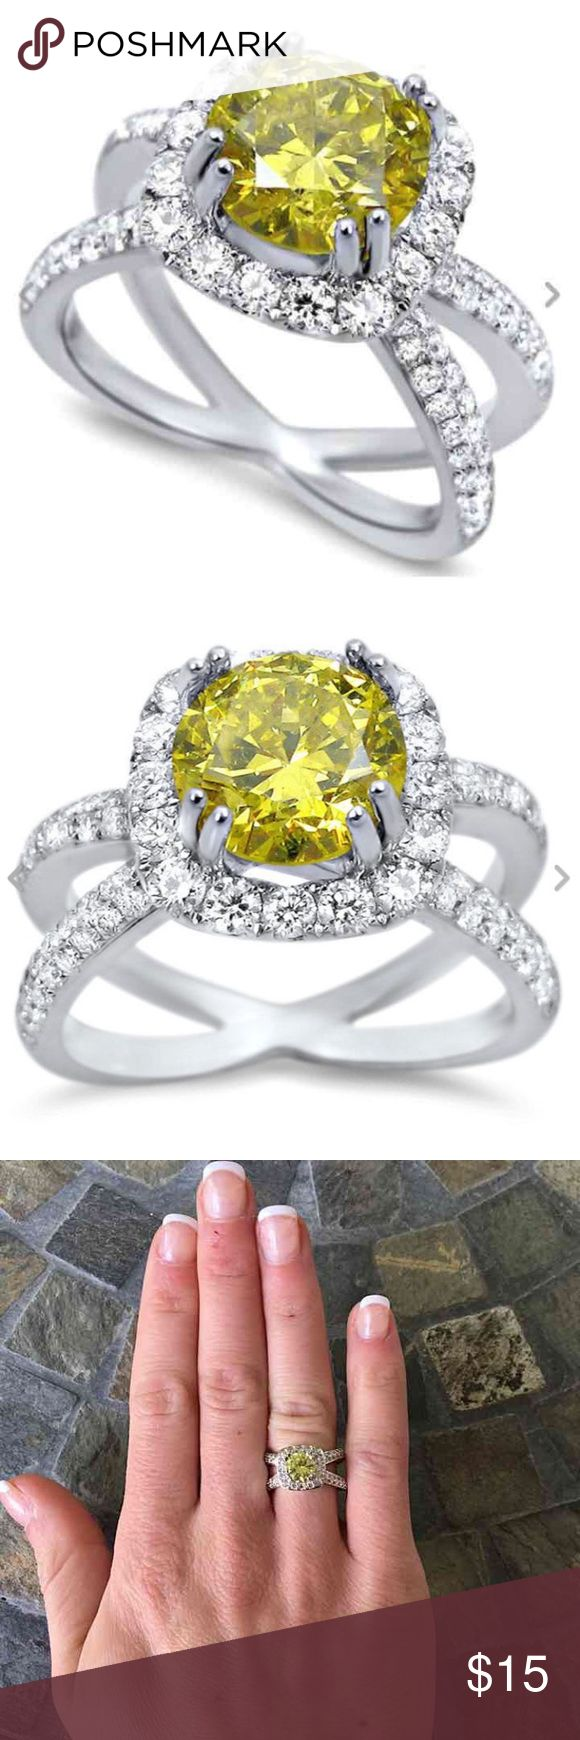 Round Yellow Citrine Halo Silver Engagement Ring Very pretty and a cool designed band! Round yellow citrine gemstone  Halo setting Split/crossover band (looks so cute on finger!) White stones in all four shanks of the band Silver plated  FIRM PRICE/NO TRADES❗ Jewelry Rings